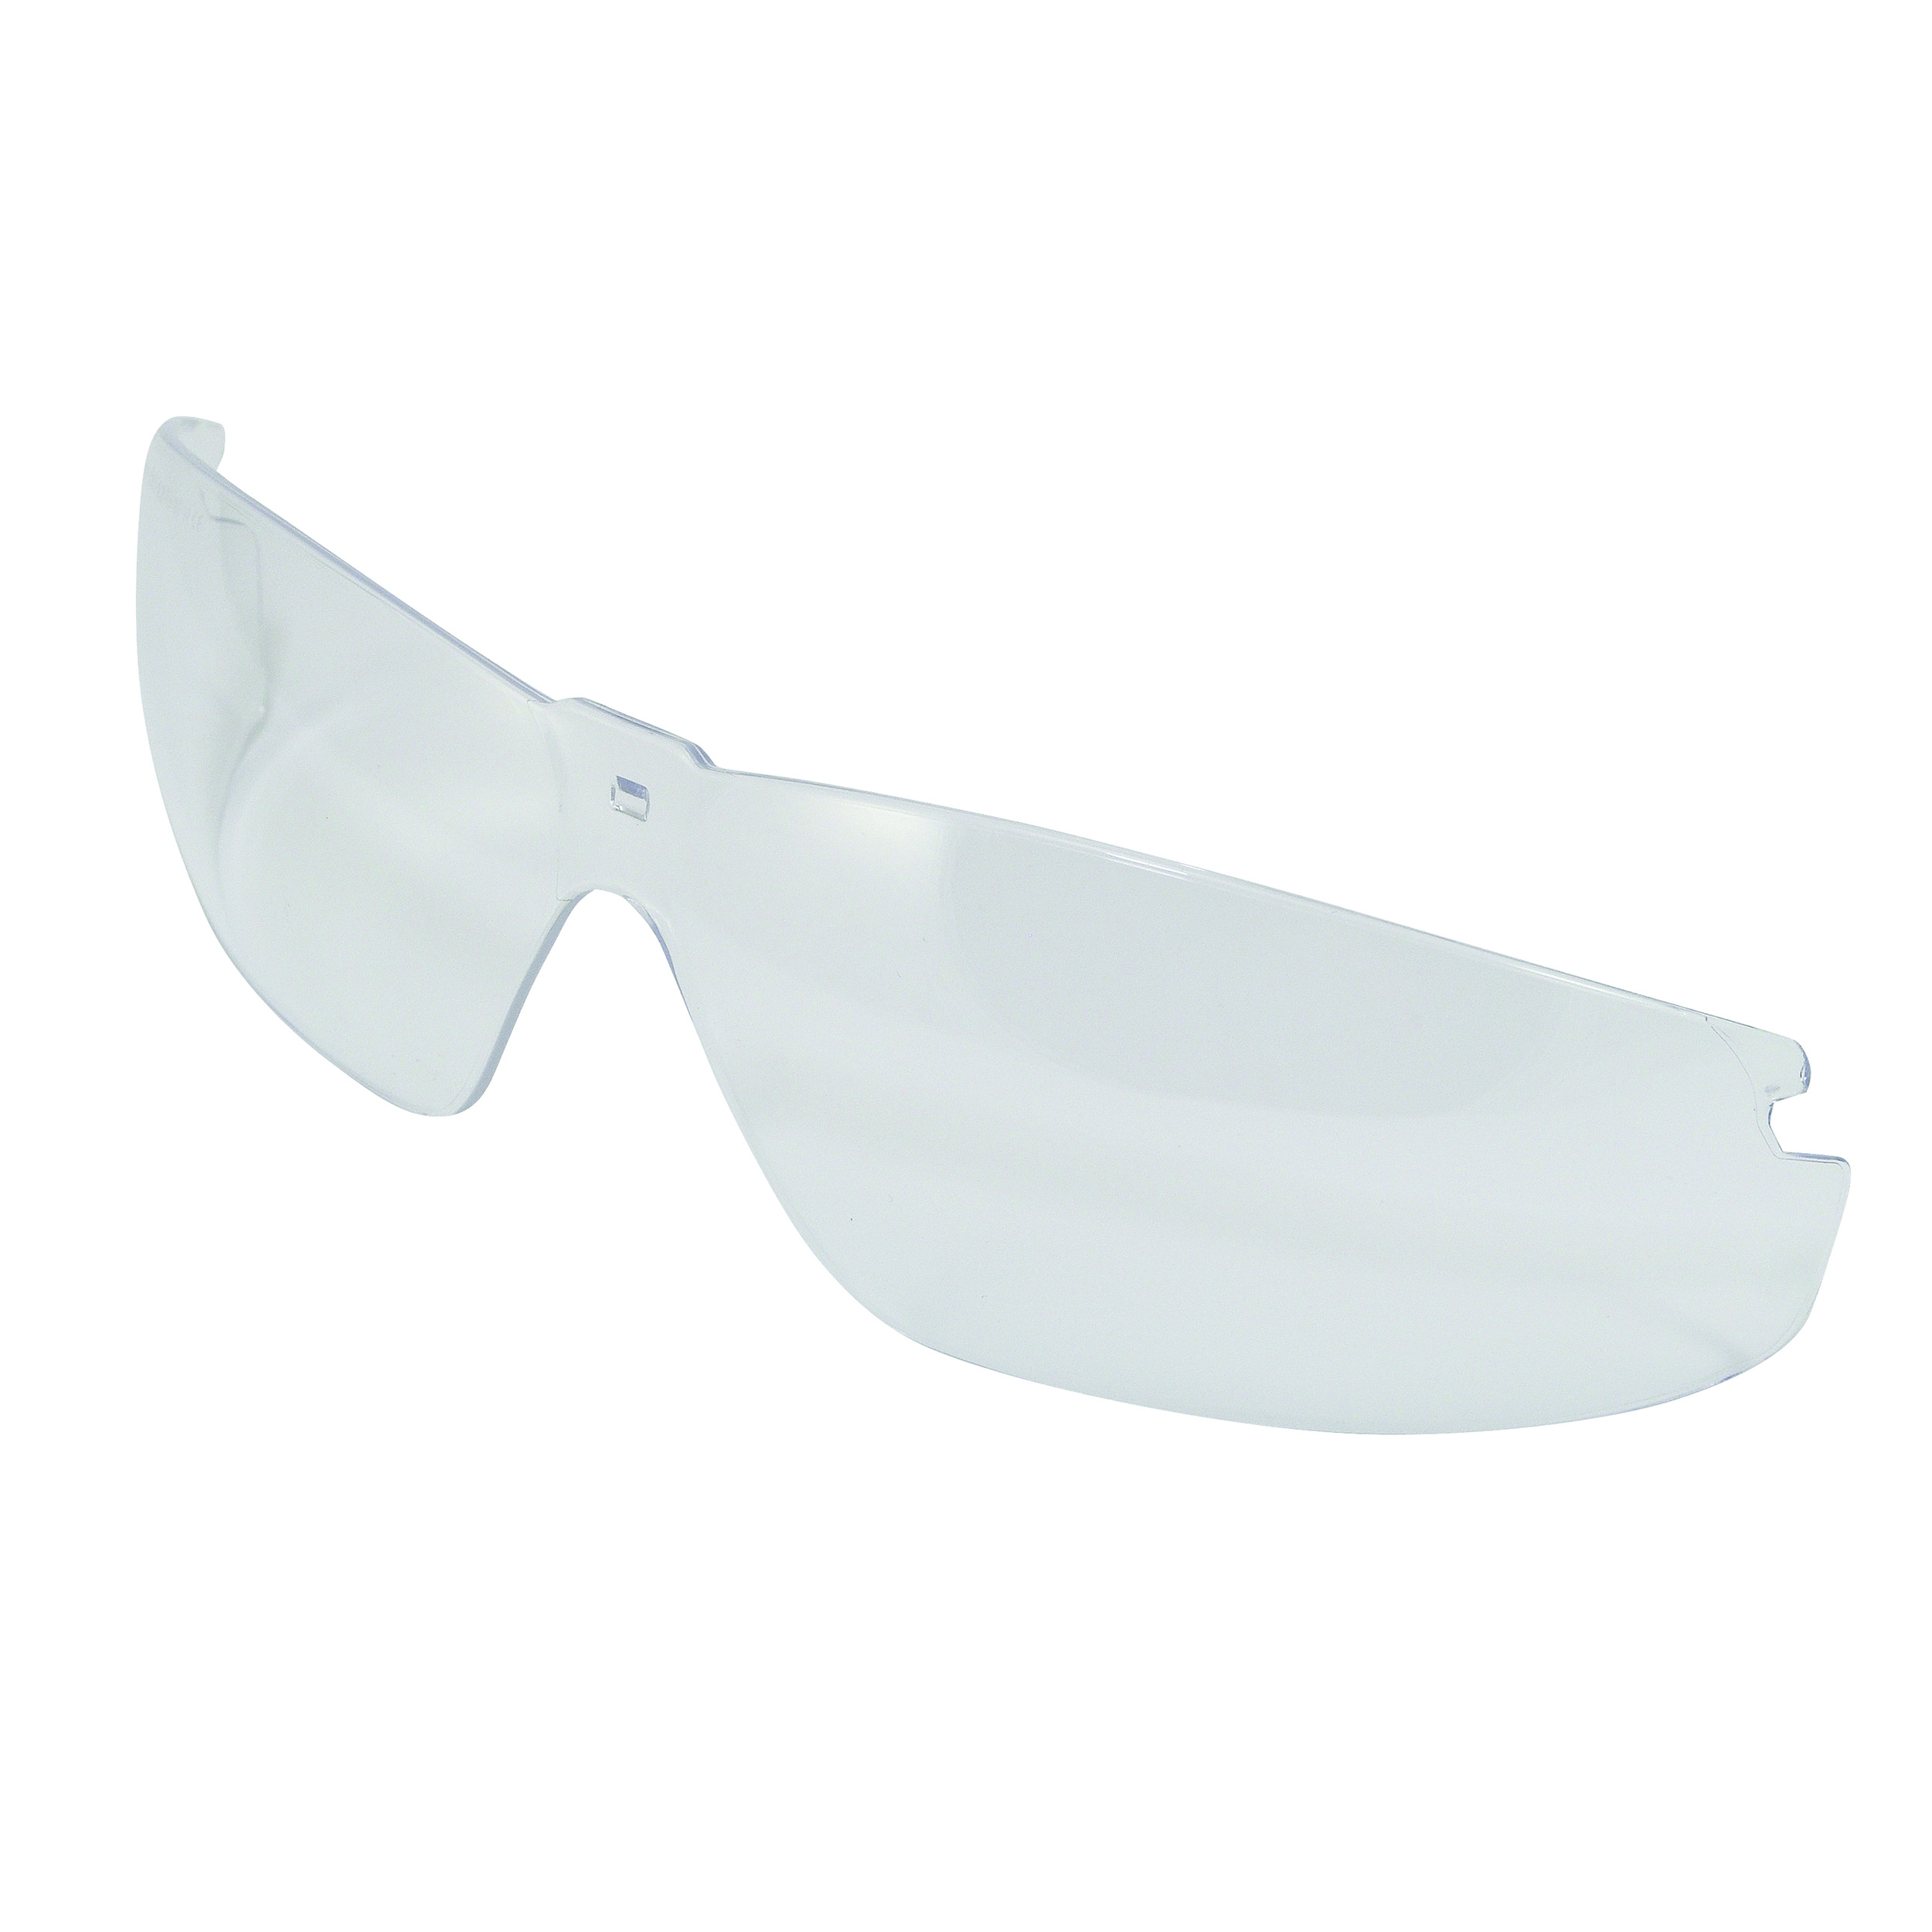 9200244 ProVision Infinity Safety Eyewear Replacement Lens, Clear Lens, 3613R